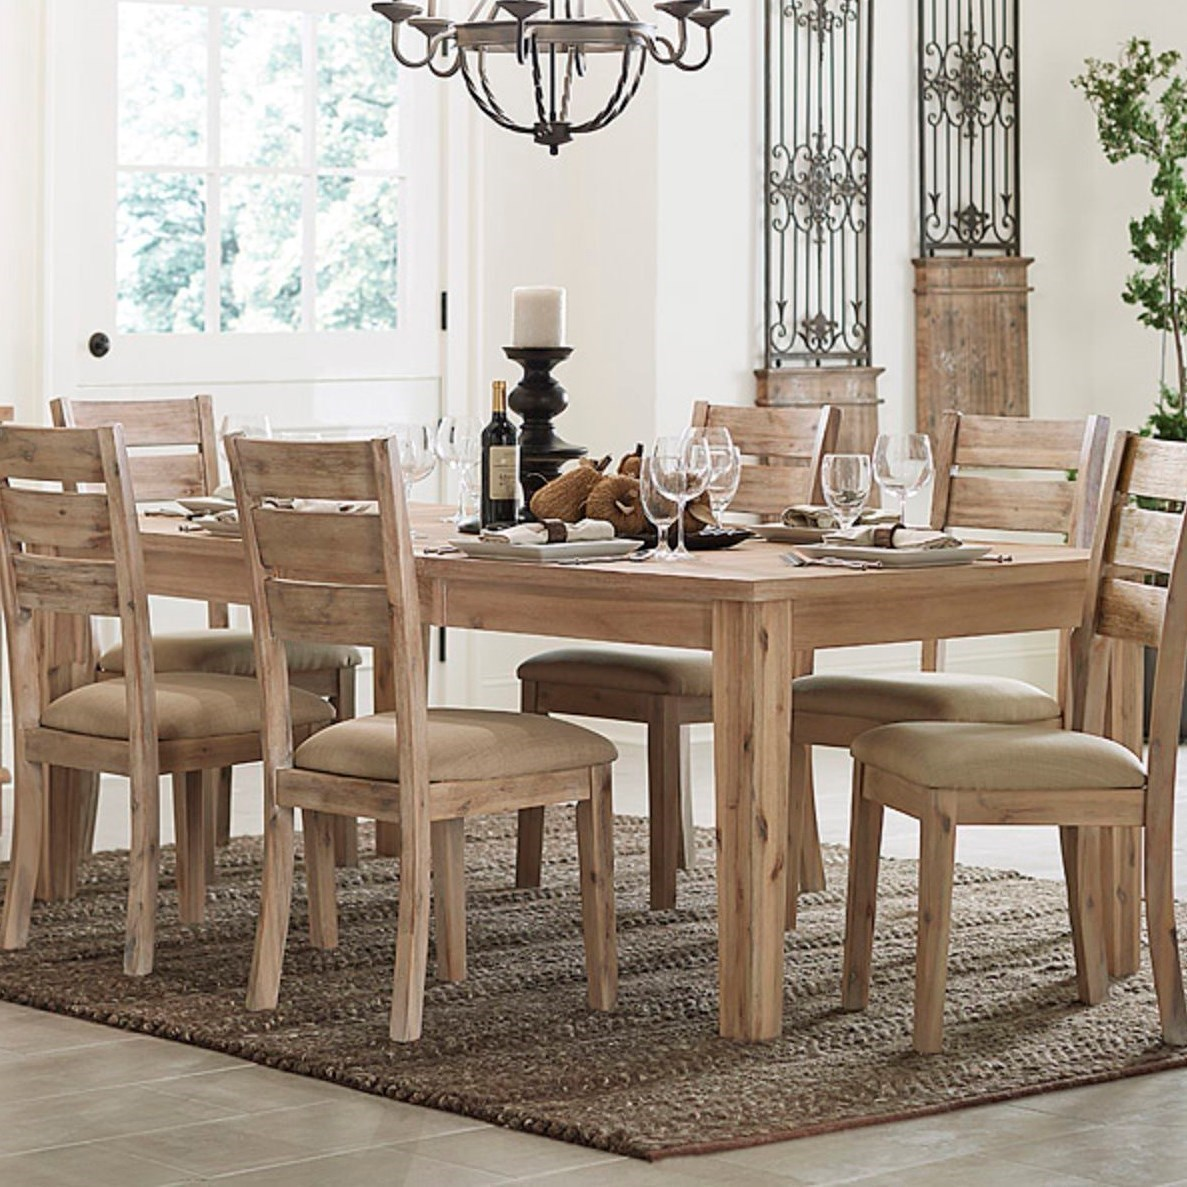 Homelegance Colmar Contemporary Table - Item Number: 5411RF-82